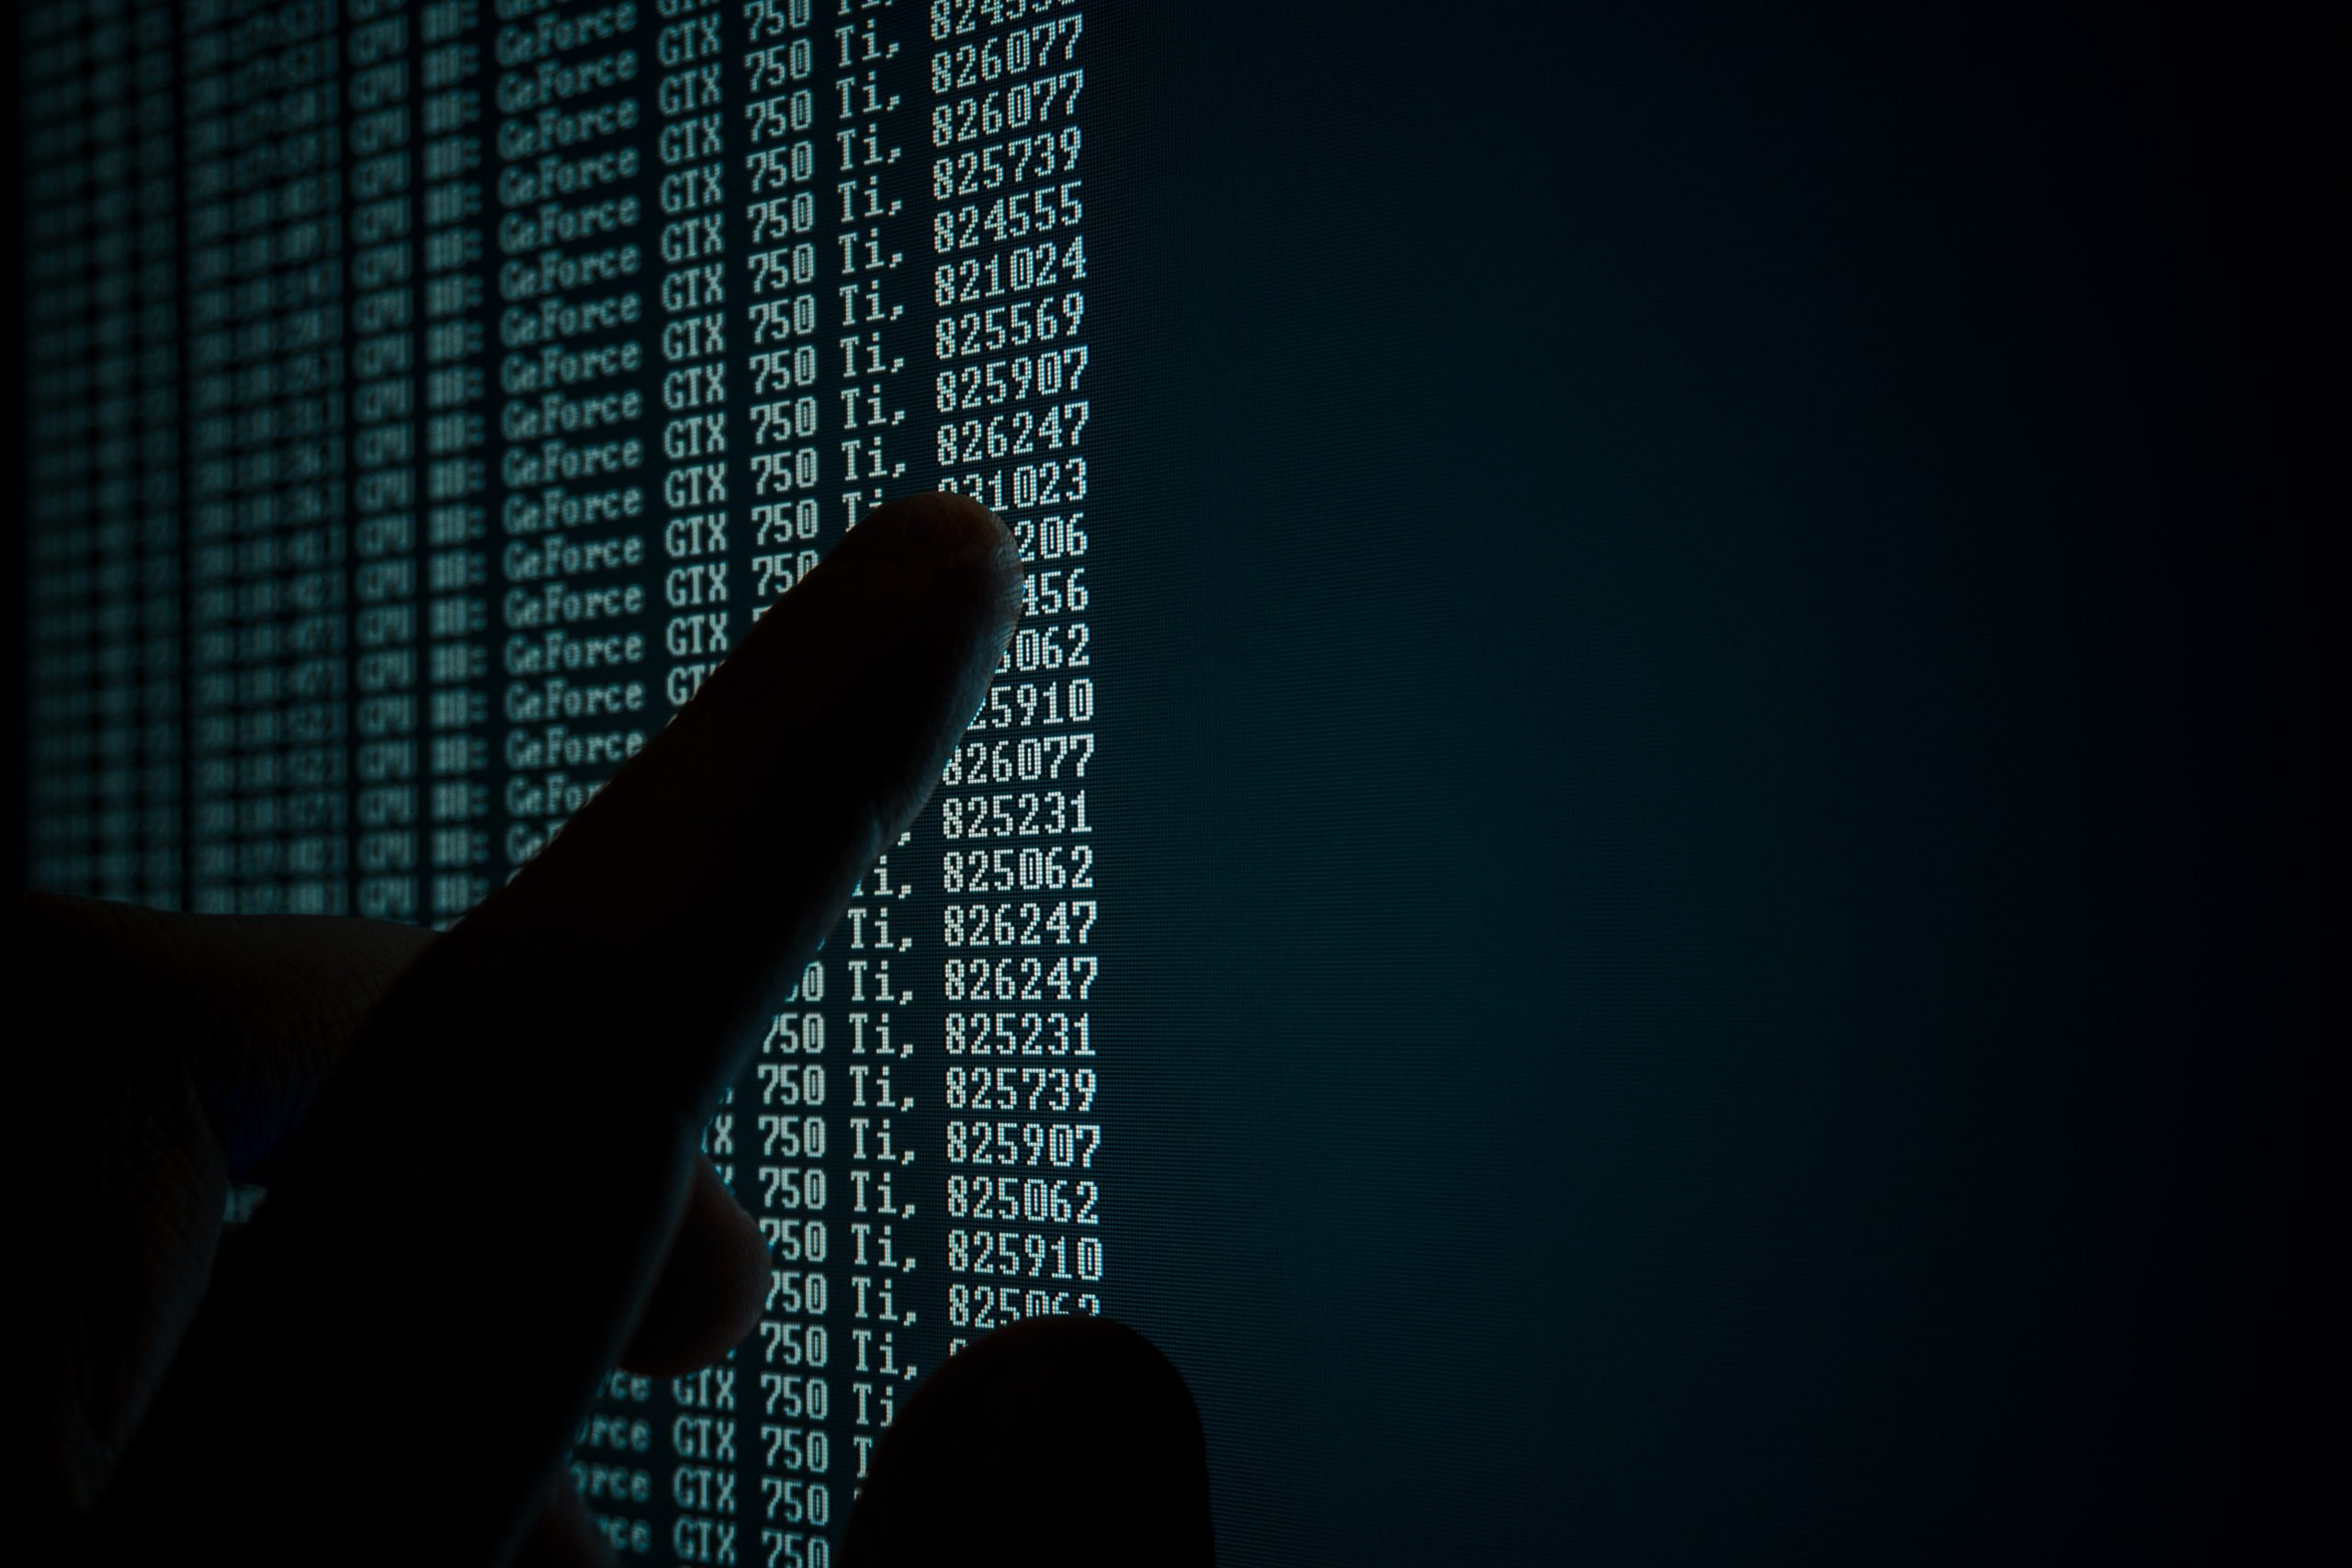 A hand pointing to rows of data Credit: Vitaly Vlasov from Pexels